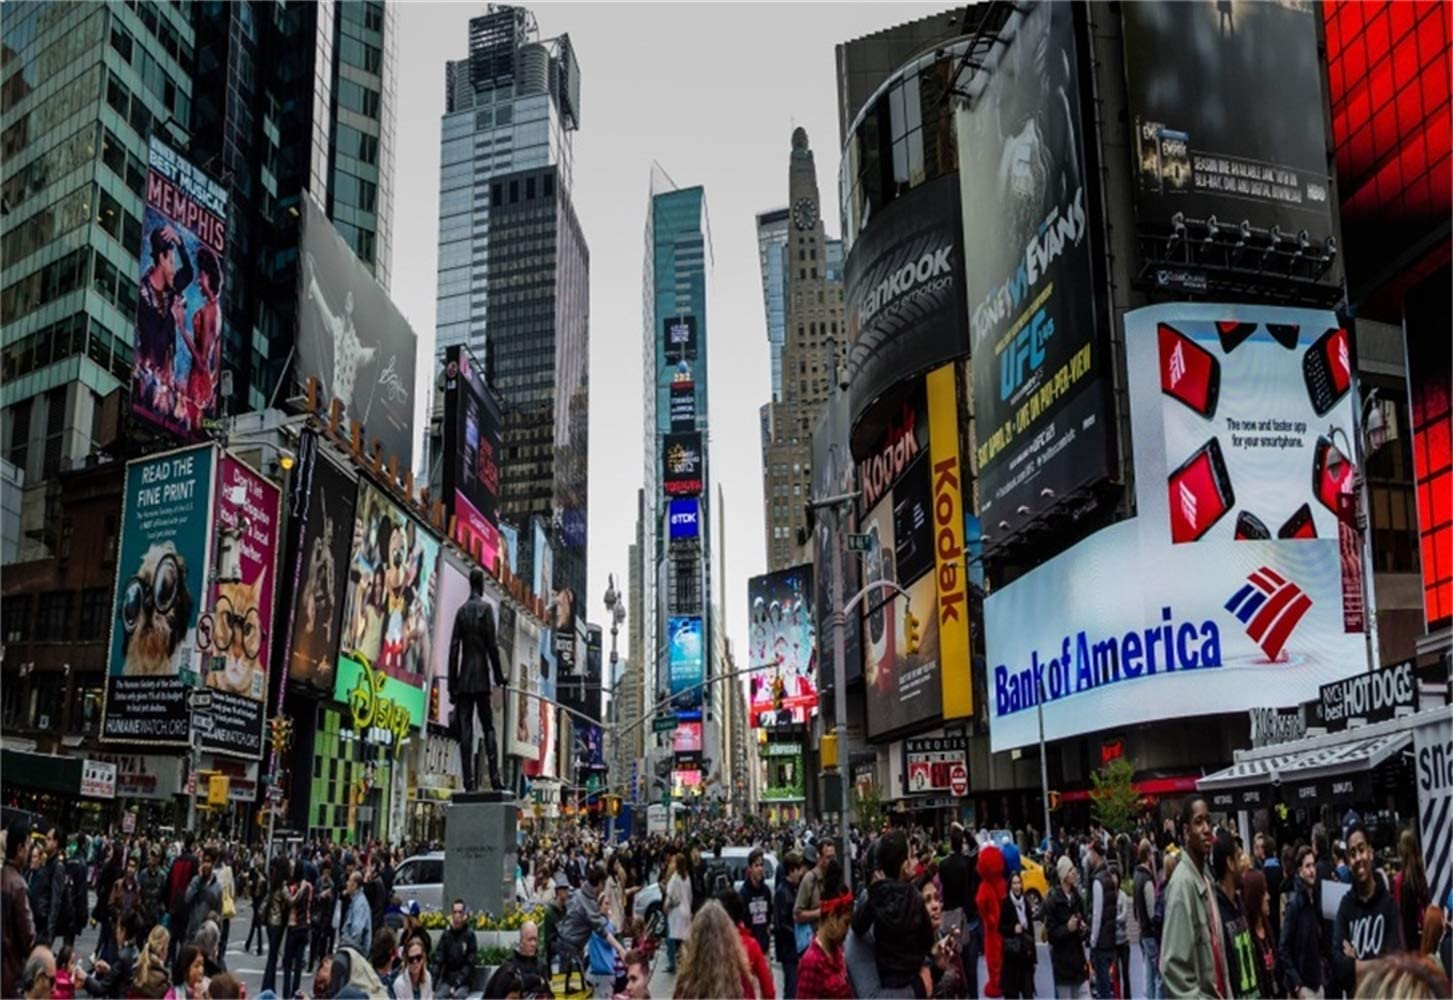 7x5ft New York Times Square Vinyl Photography Background Bustling Street Statue Crowded People Serried Advertising Board Backdrop Flourishing Cityscape Wallpaper Tourism Shoot